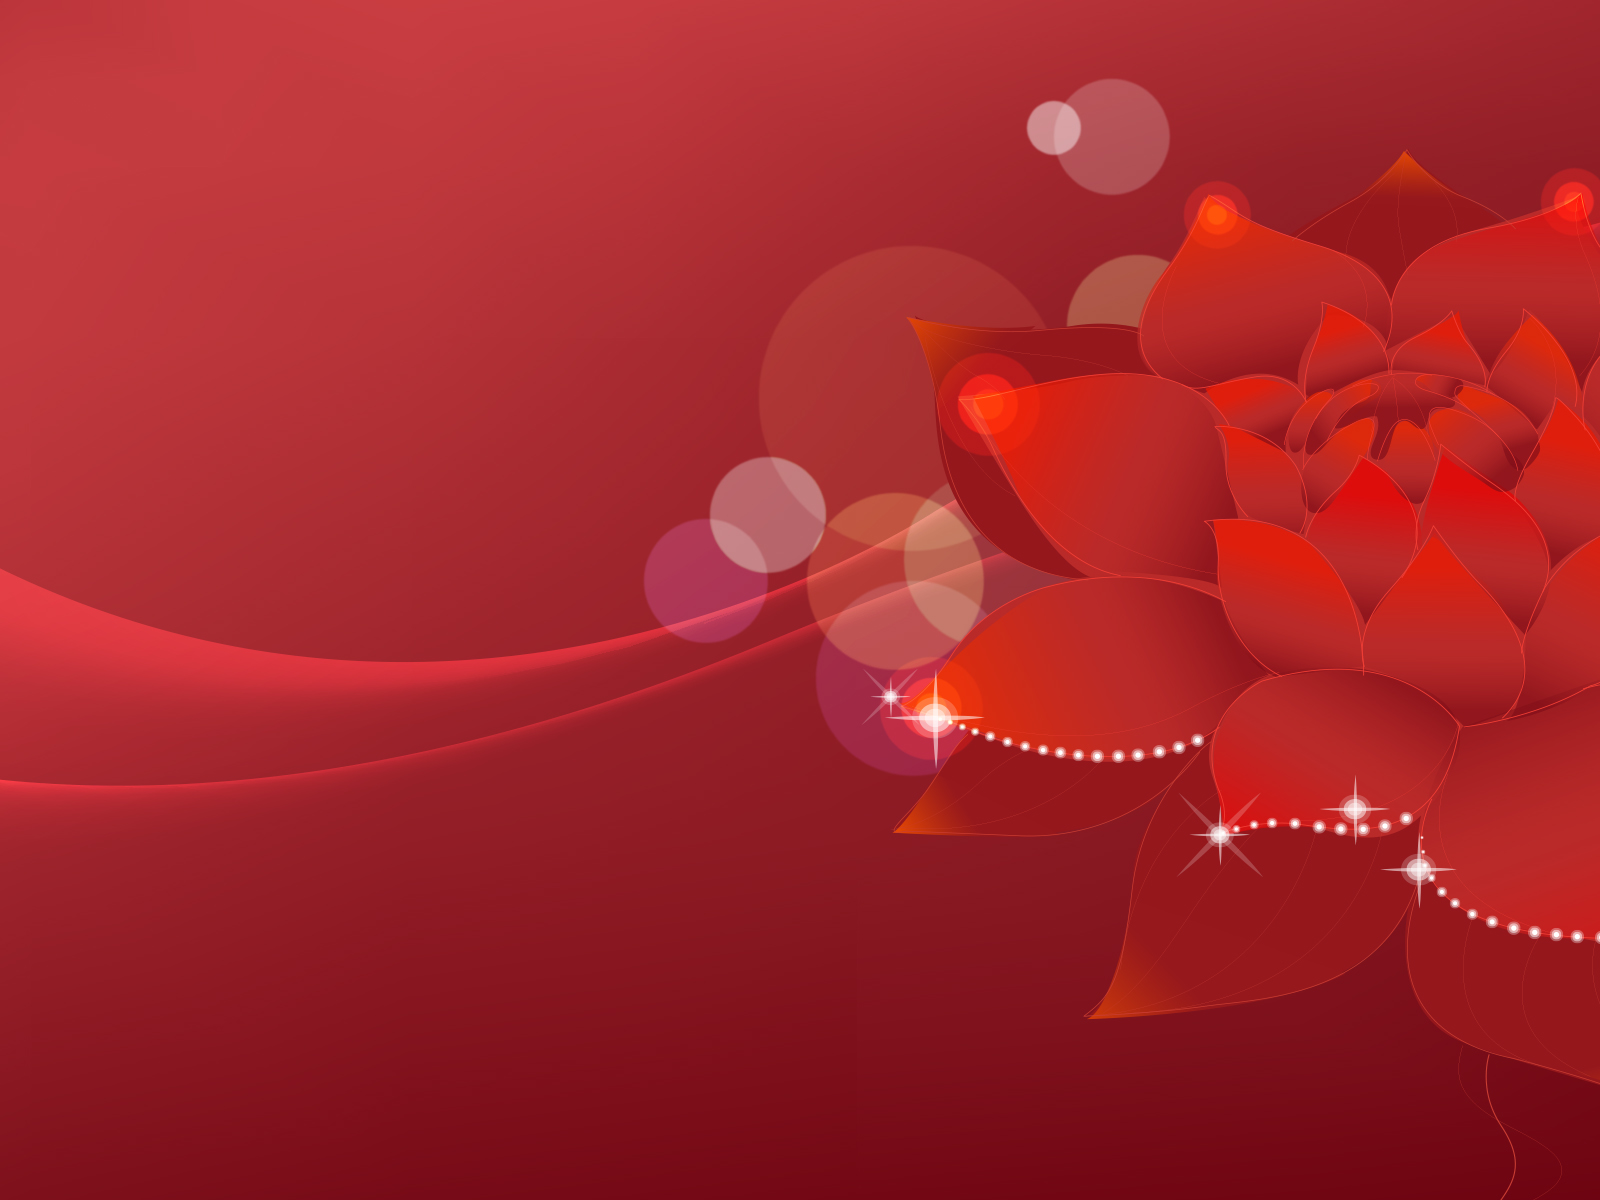 Lotus Flowers Dream Backgrounds Flowers Red Templates